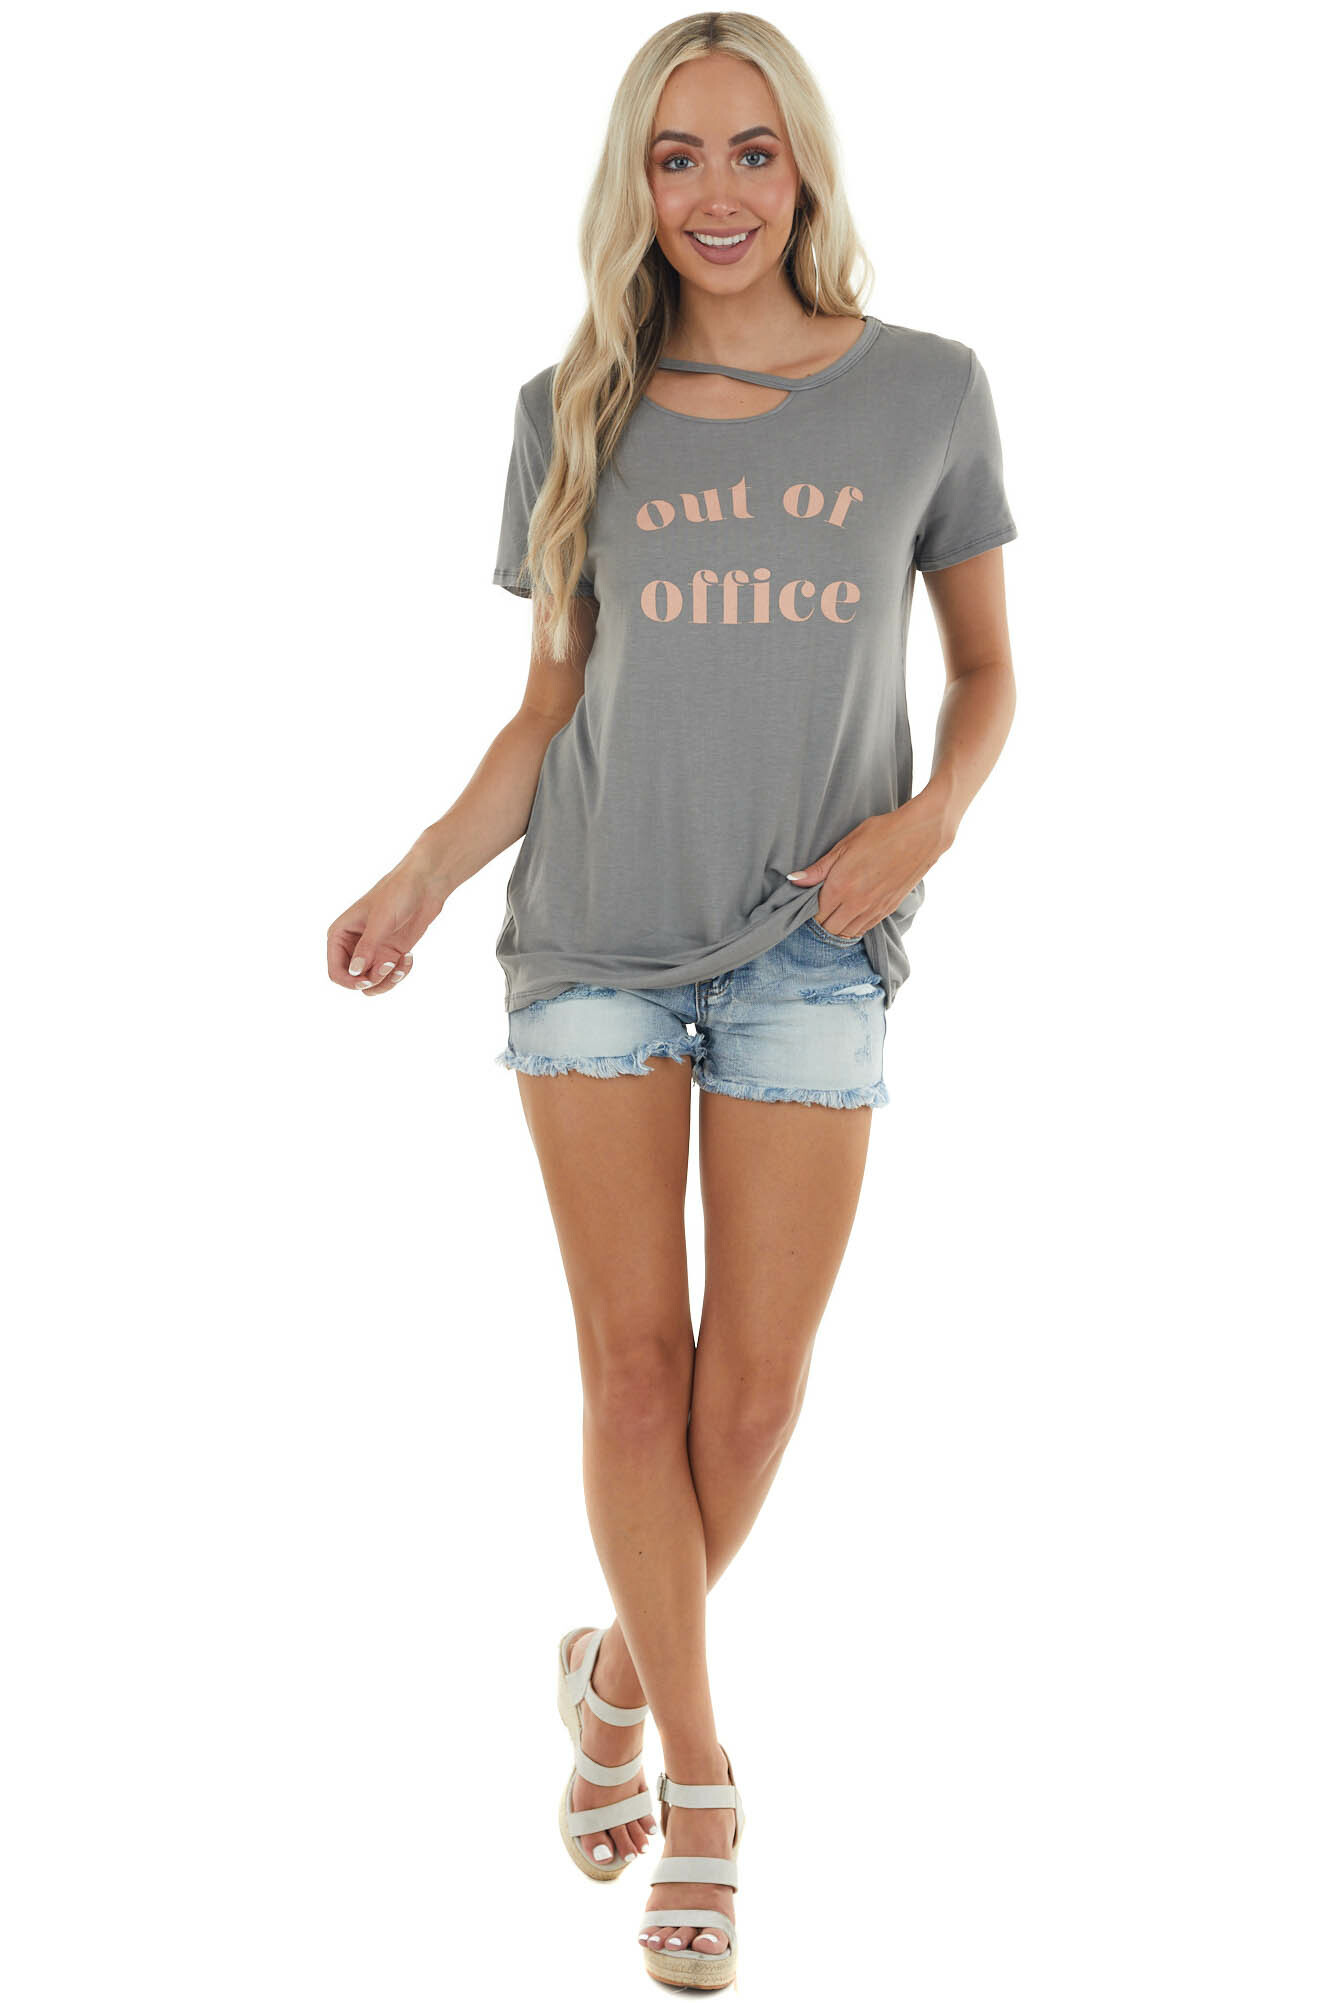 Stone 'Out of Office' Top with Cut Out Details